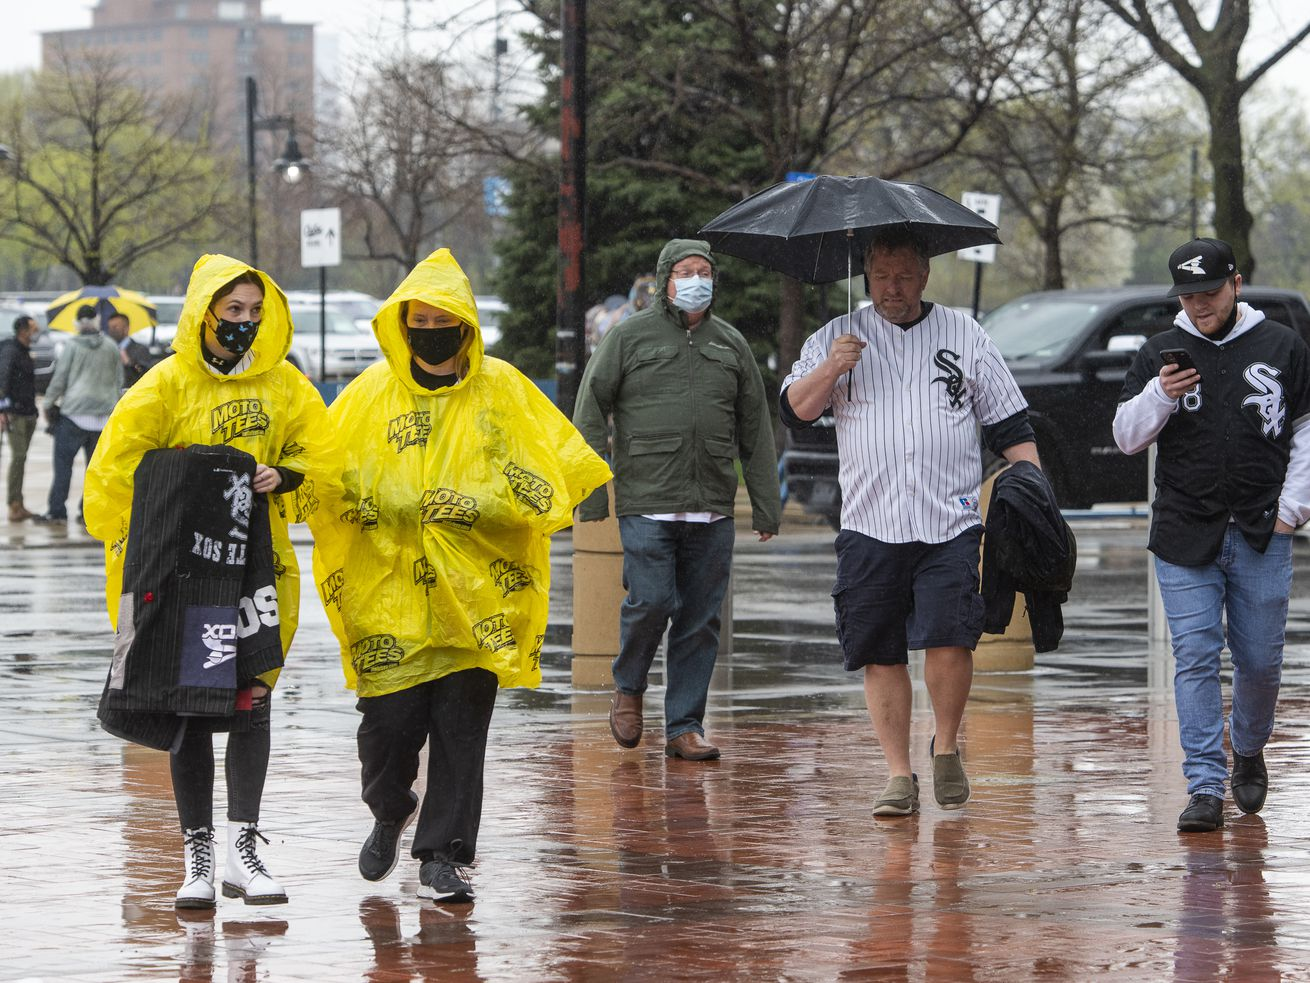 Chicago White Sox fans walk outside the park before the rain-delayed home opener on Thursday, April 8, 2021.